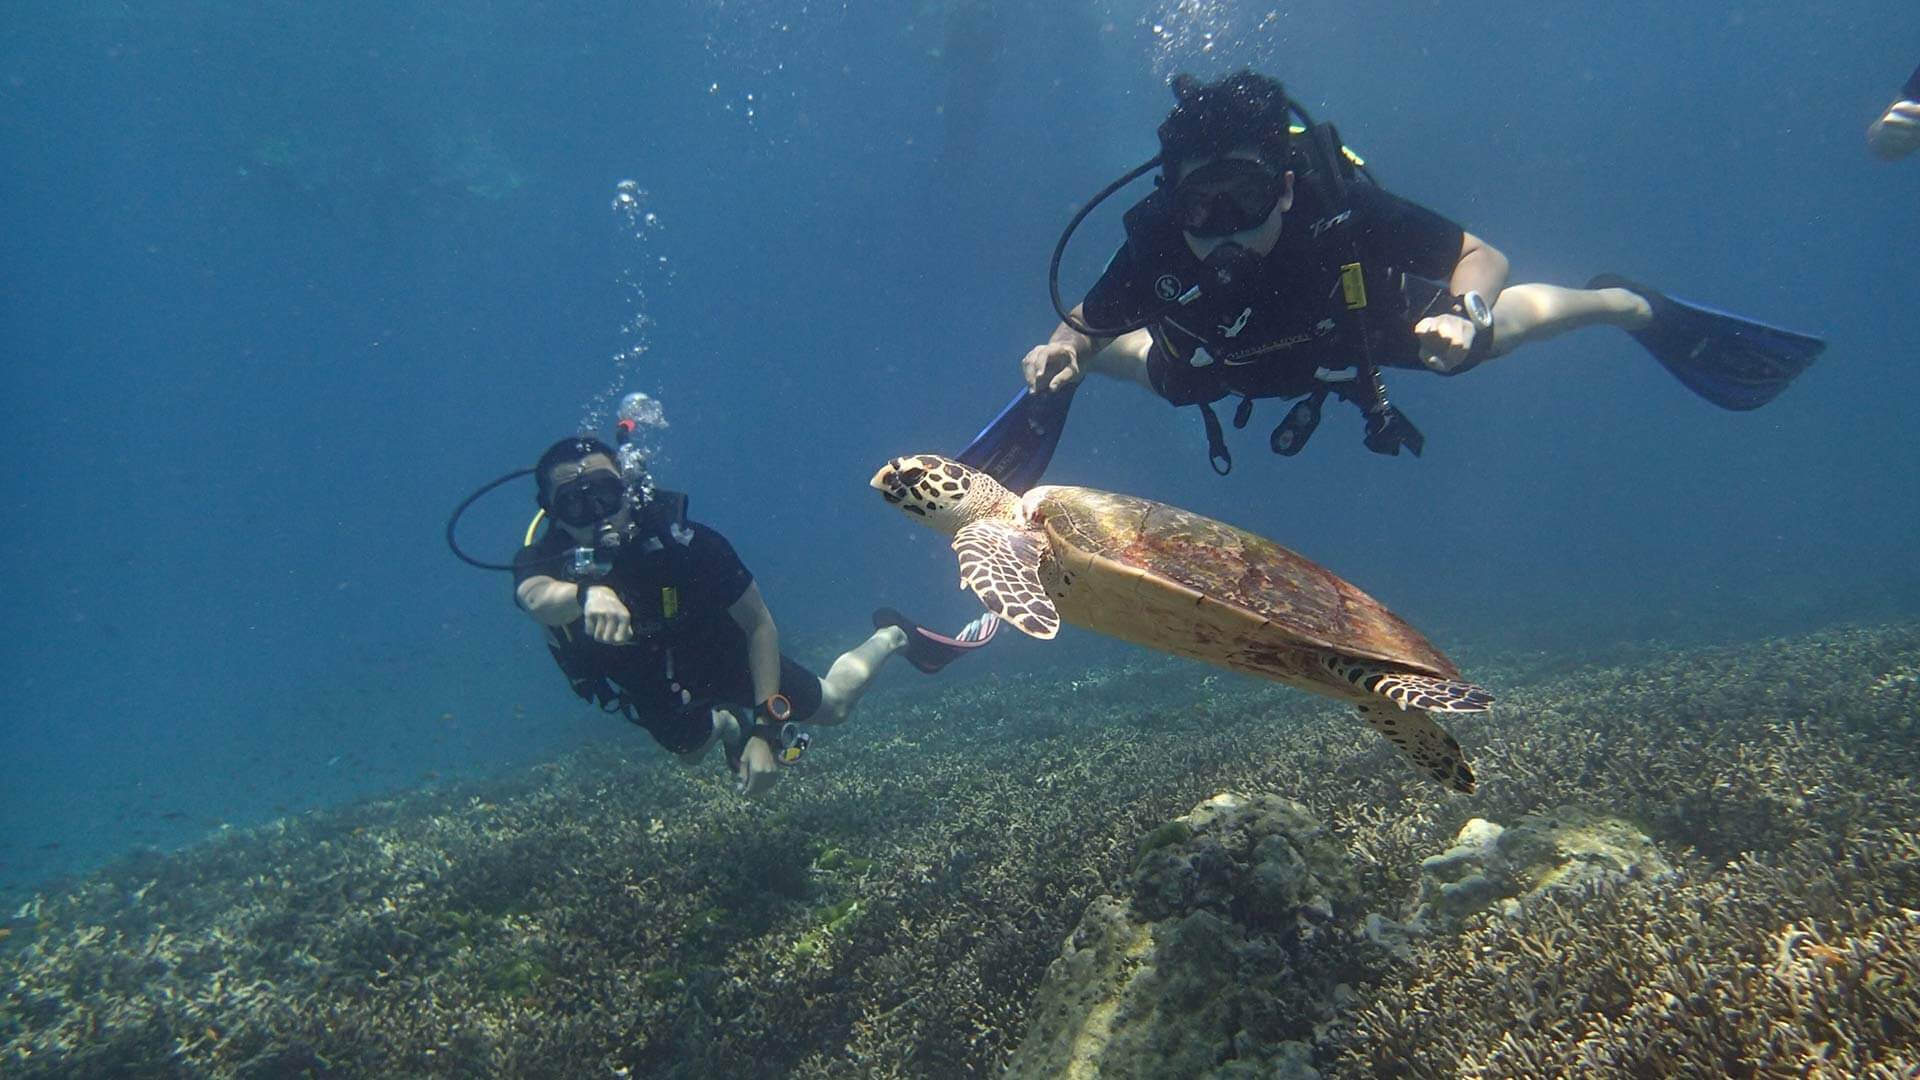 Discover scuba diving phuket learning to dive aussie divers phuket - Dive in scuba ...